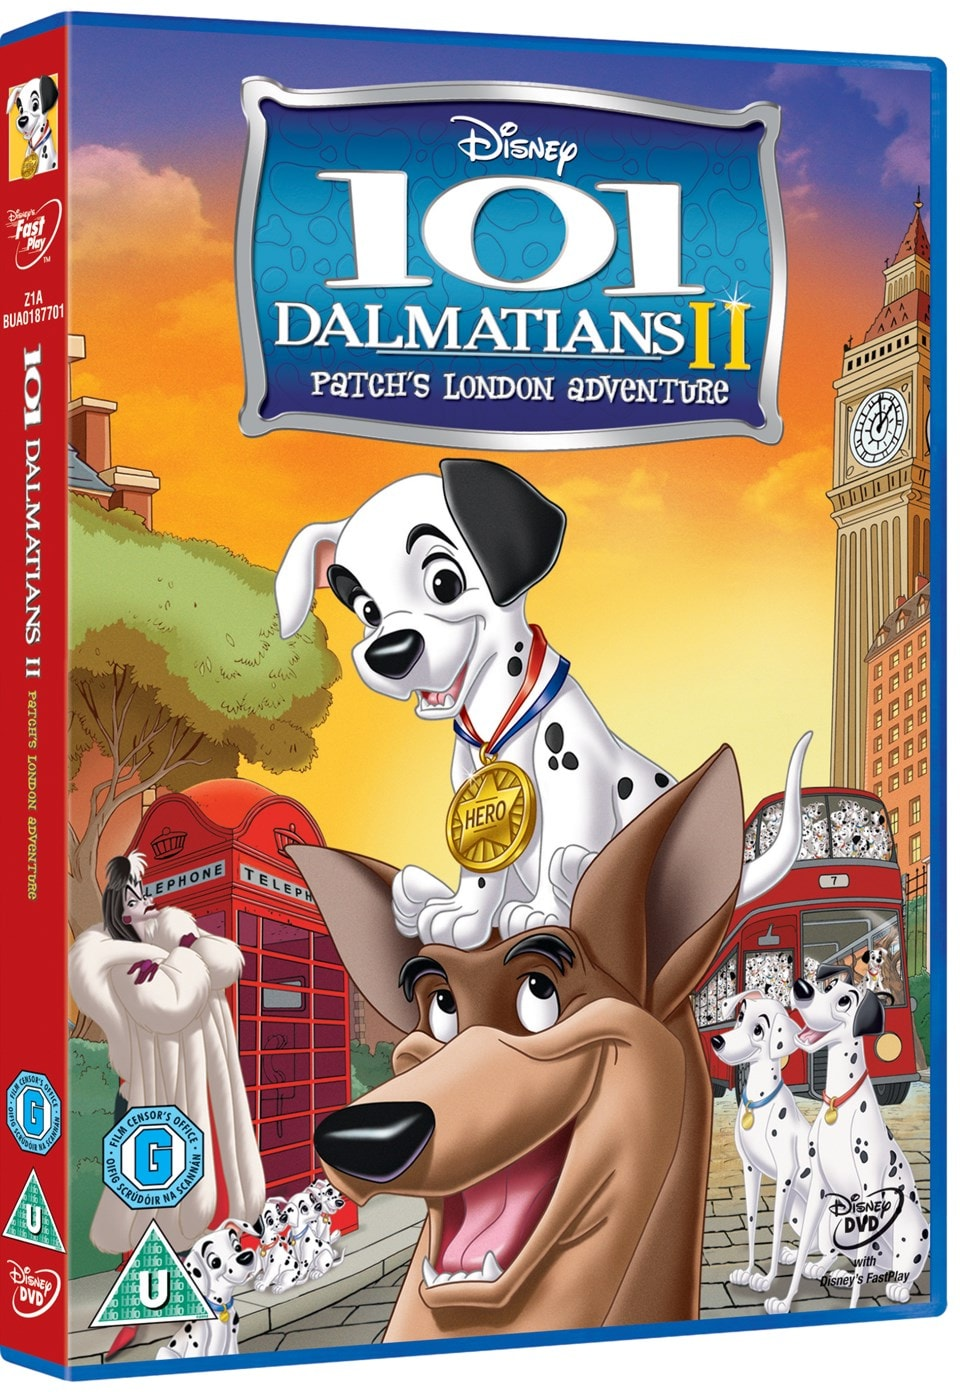 101 Dalmatians 2 - Patch's London Adventure - 2